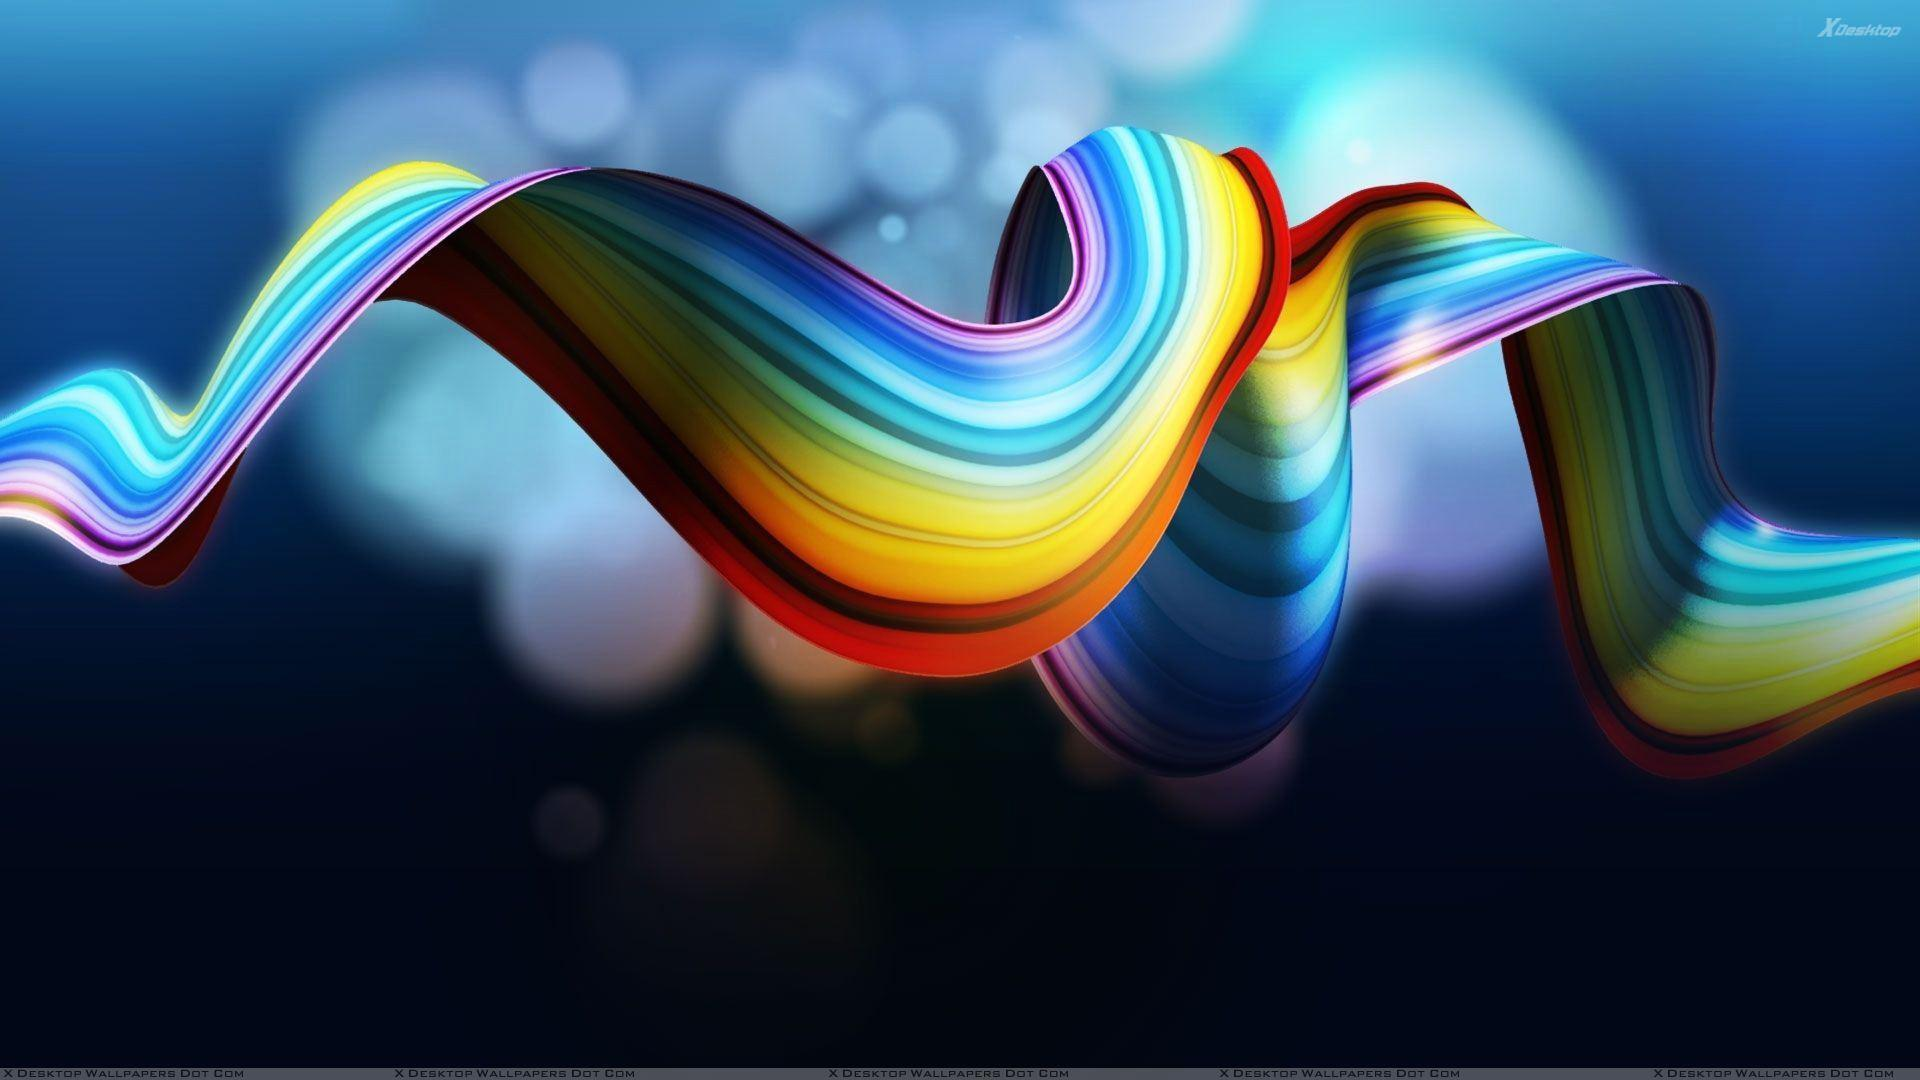 awesome rainbow wallpaper backgrounds - photo #23